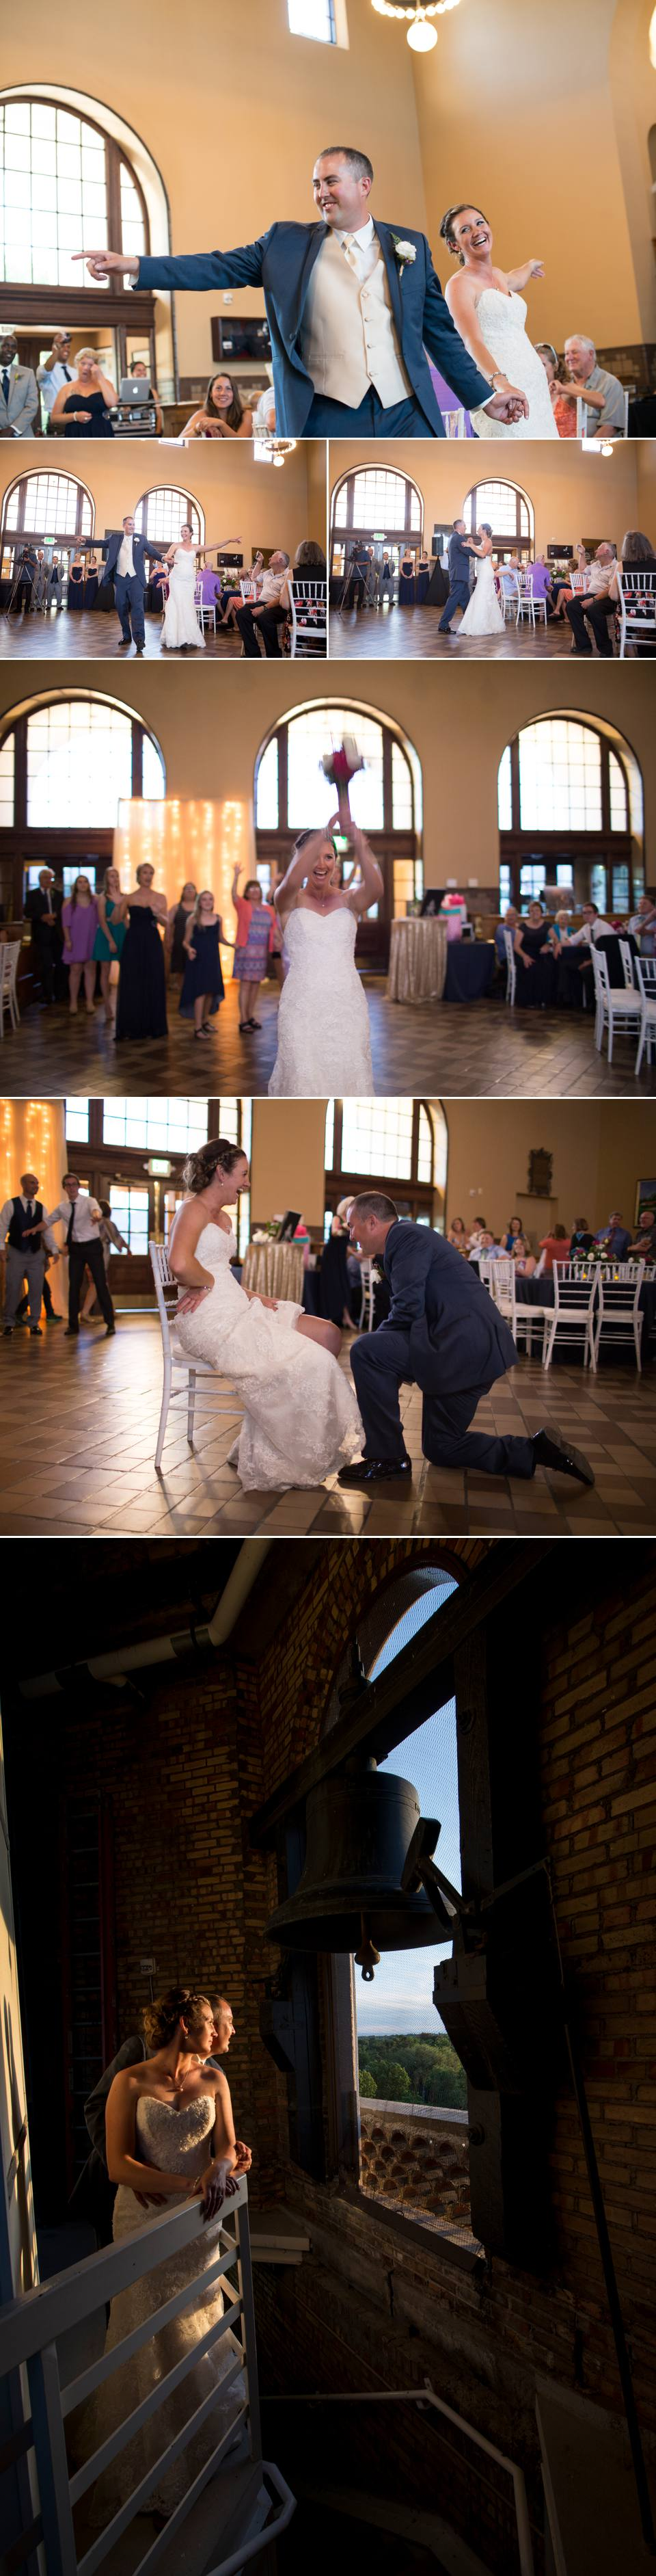 linsey and trev wedding blog 5